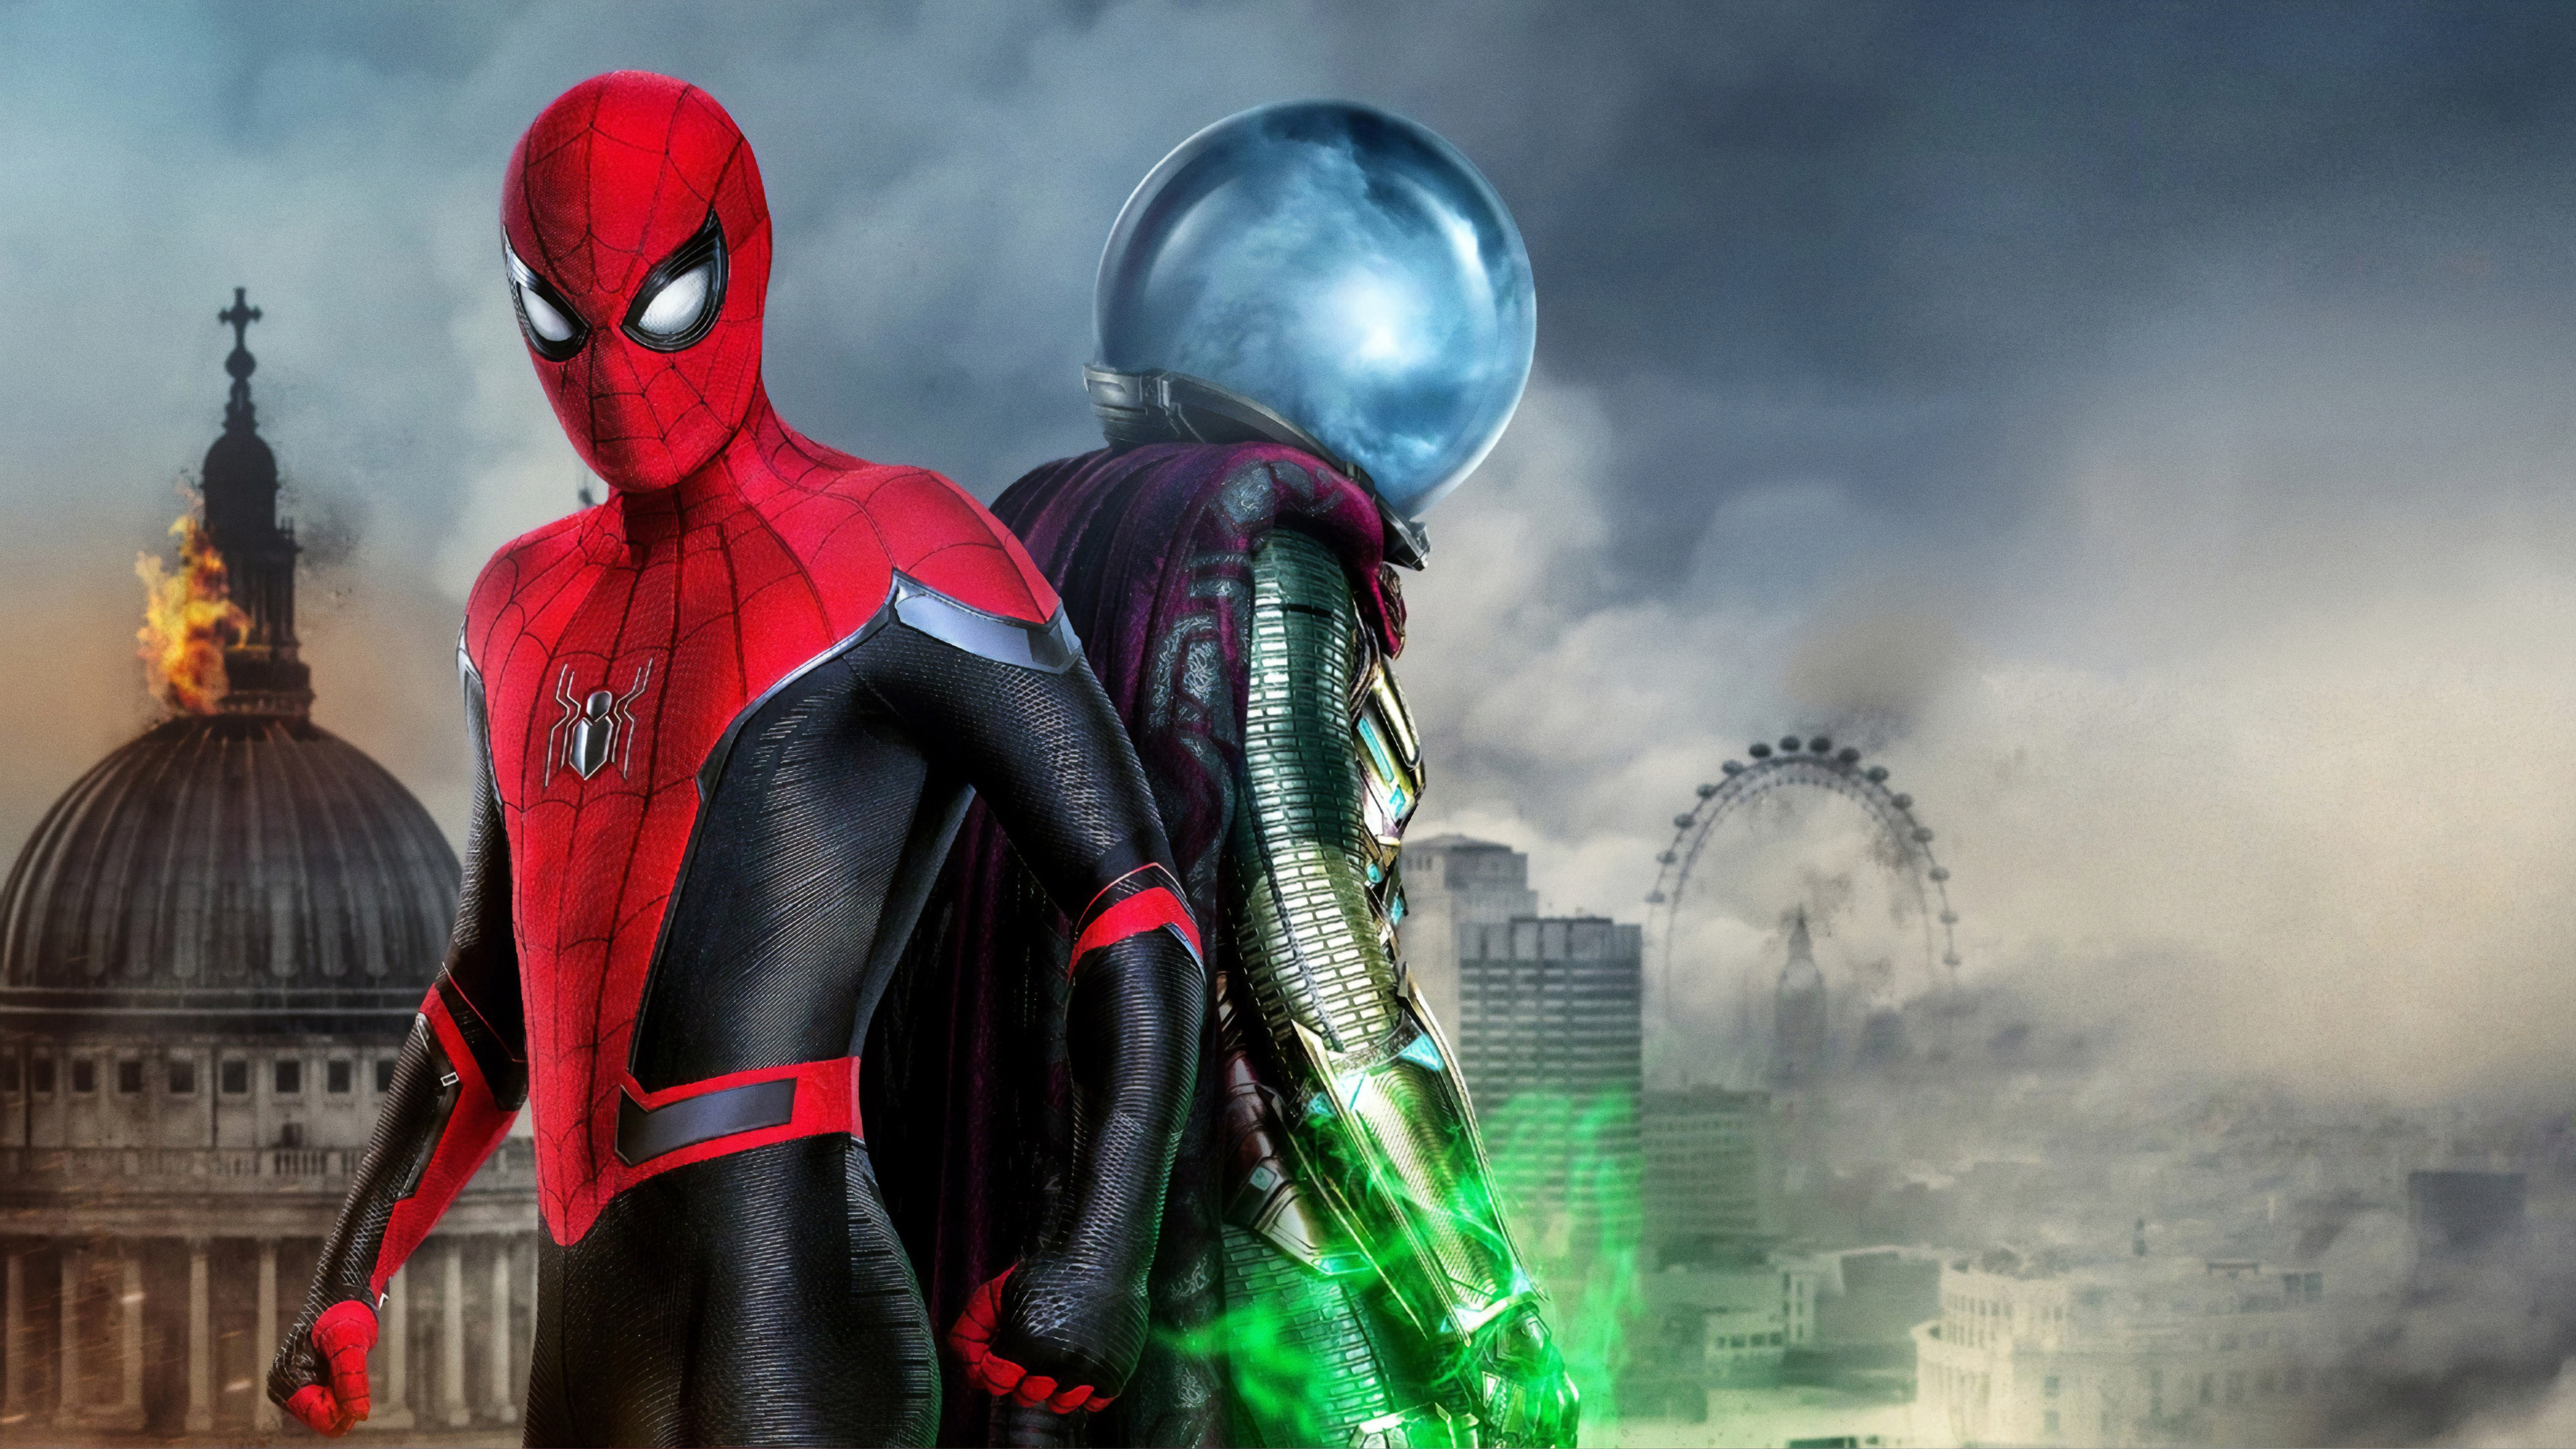 Wallpaper 4k Spiderman Far From Home Movie 4k 2019 Movies